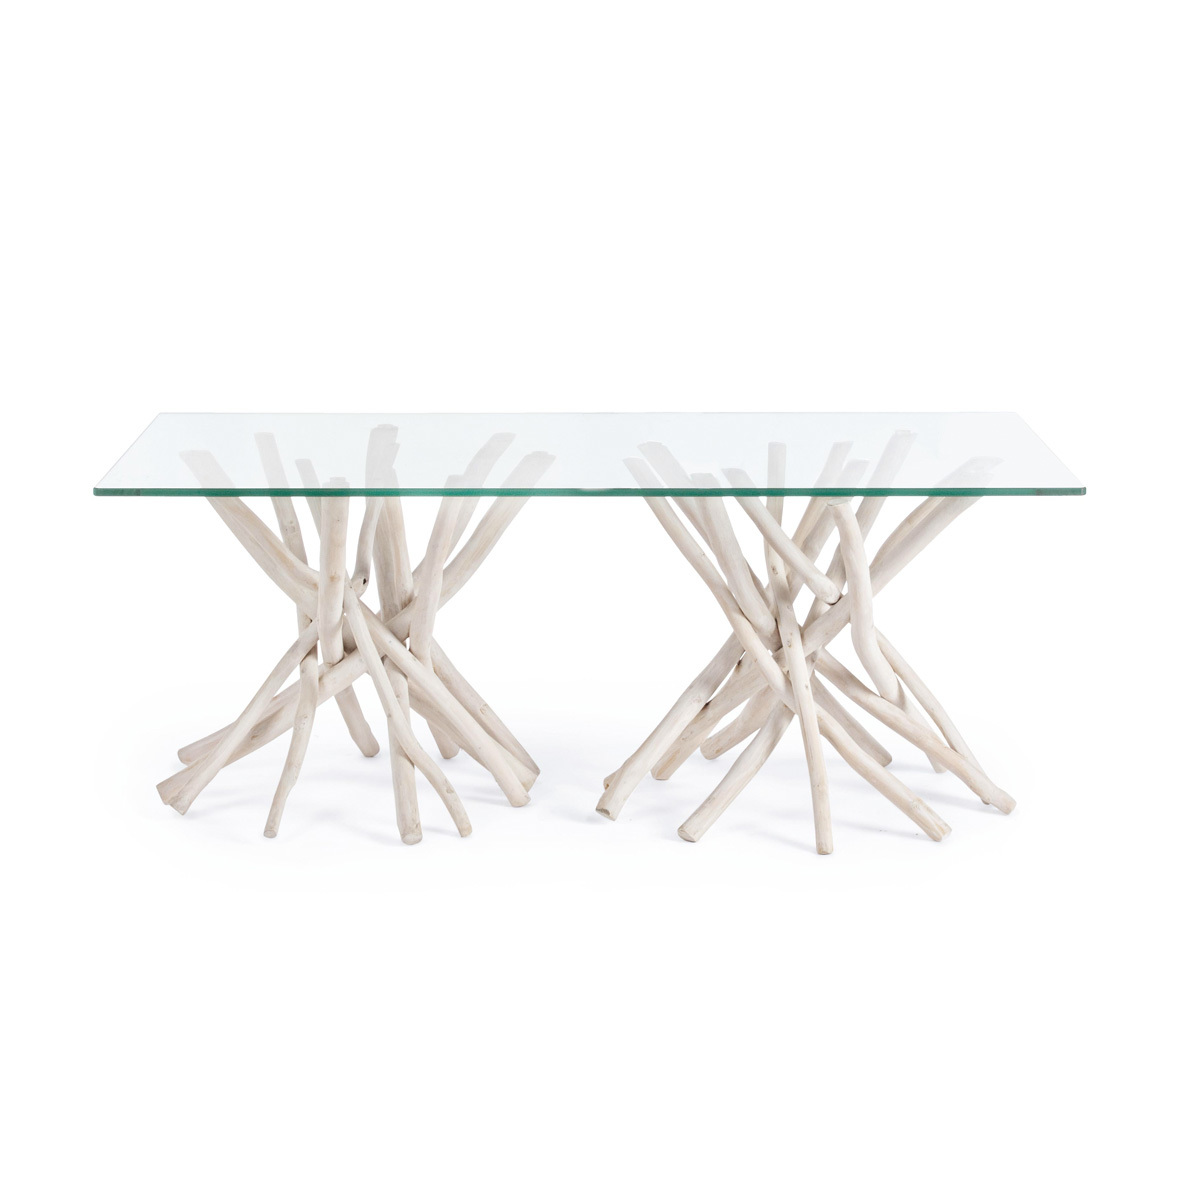 Photos 2: Bizzotto Wood and glass table l. 110 x 60 0680408